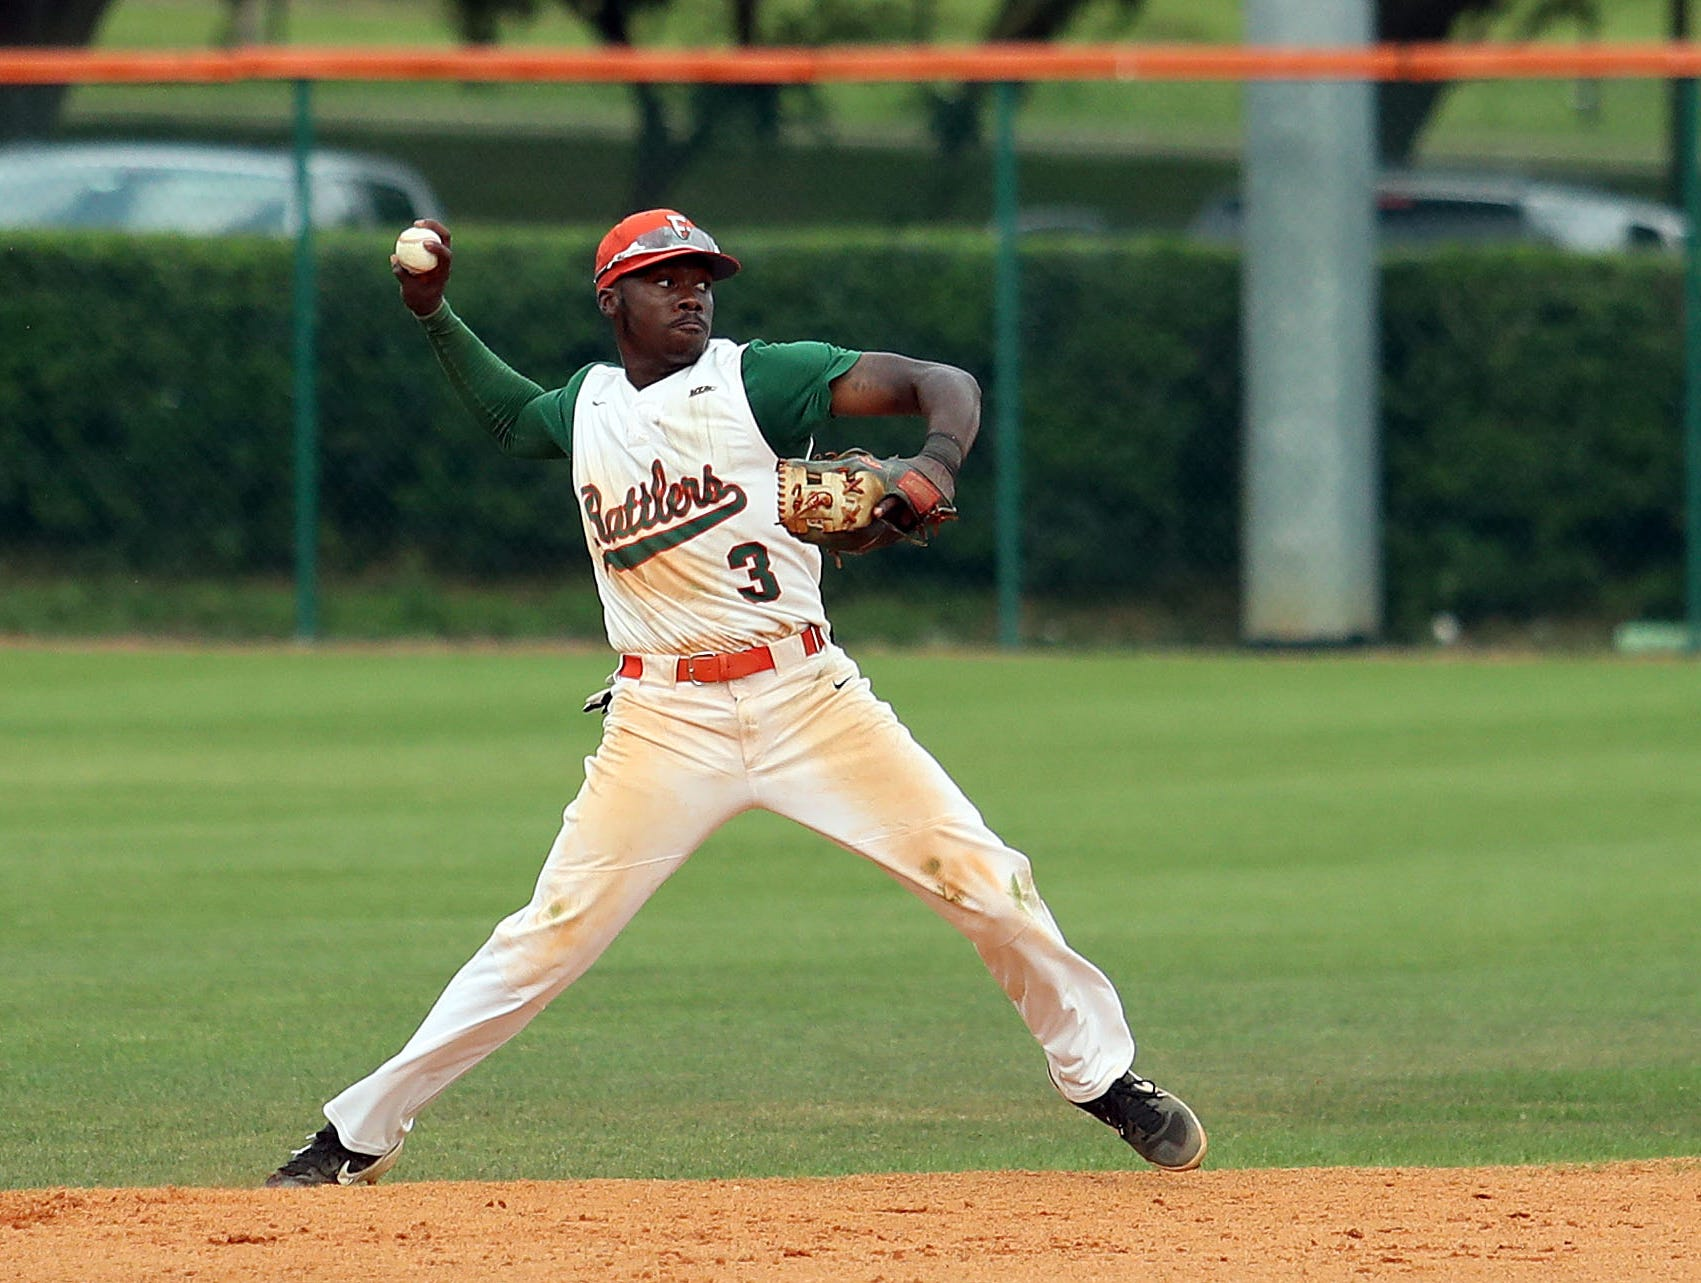 FAMU shortstop Robert Robinson fields a ball Game 2 of a doubleheader versus B-CU on Saturday, April 13, 2019.